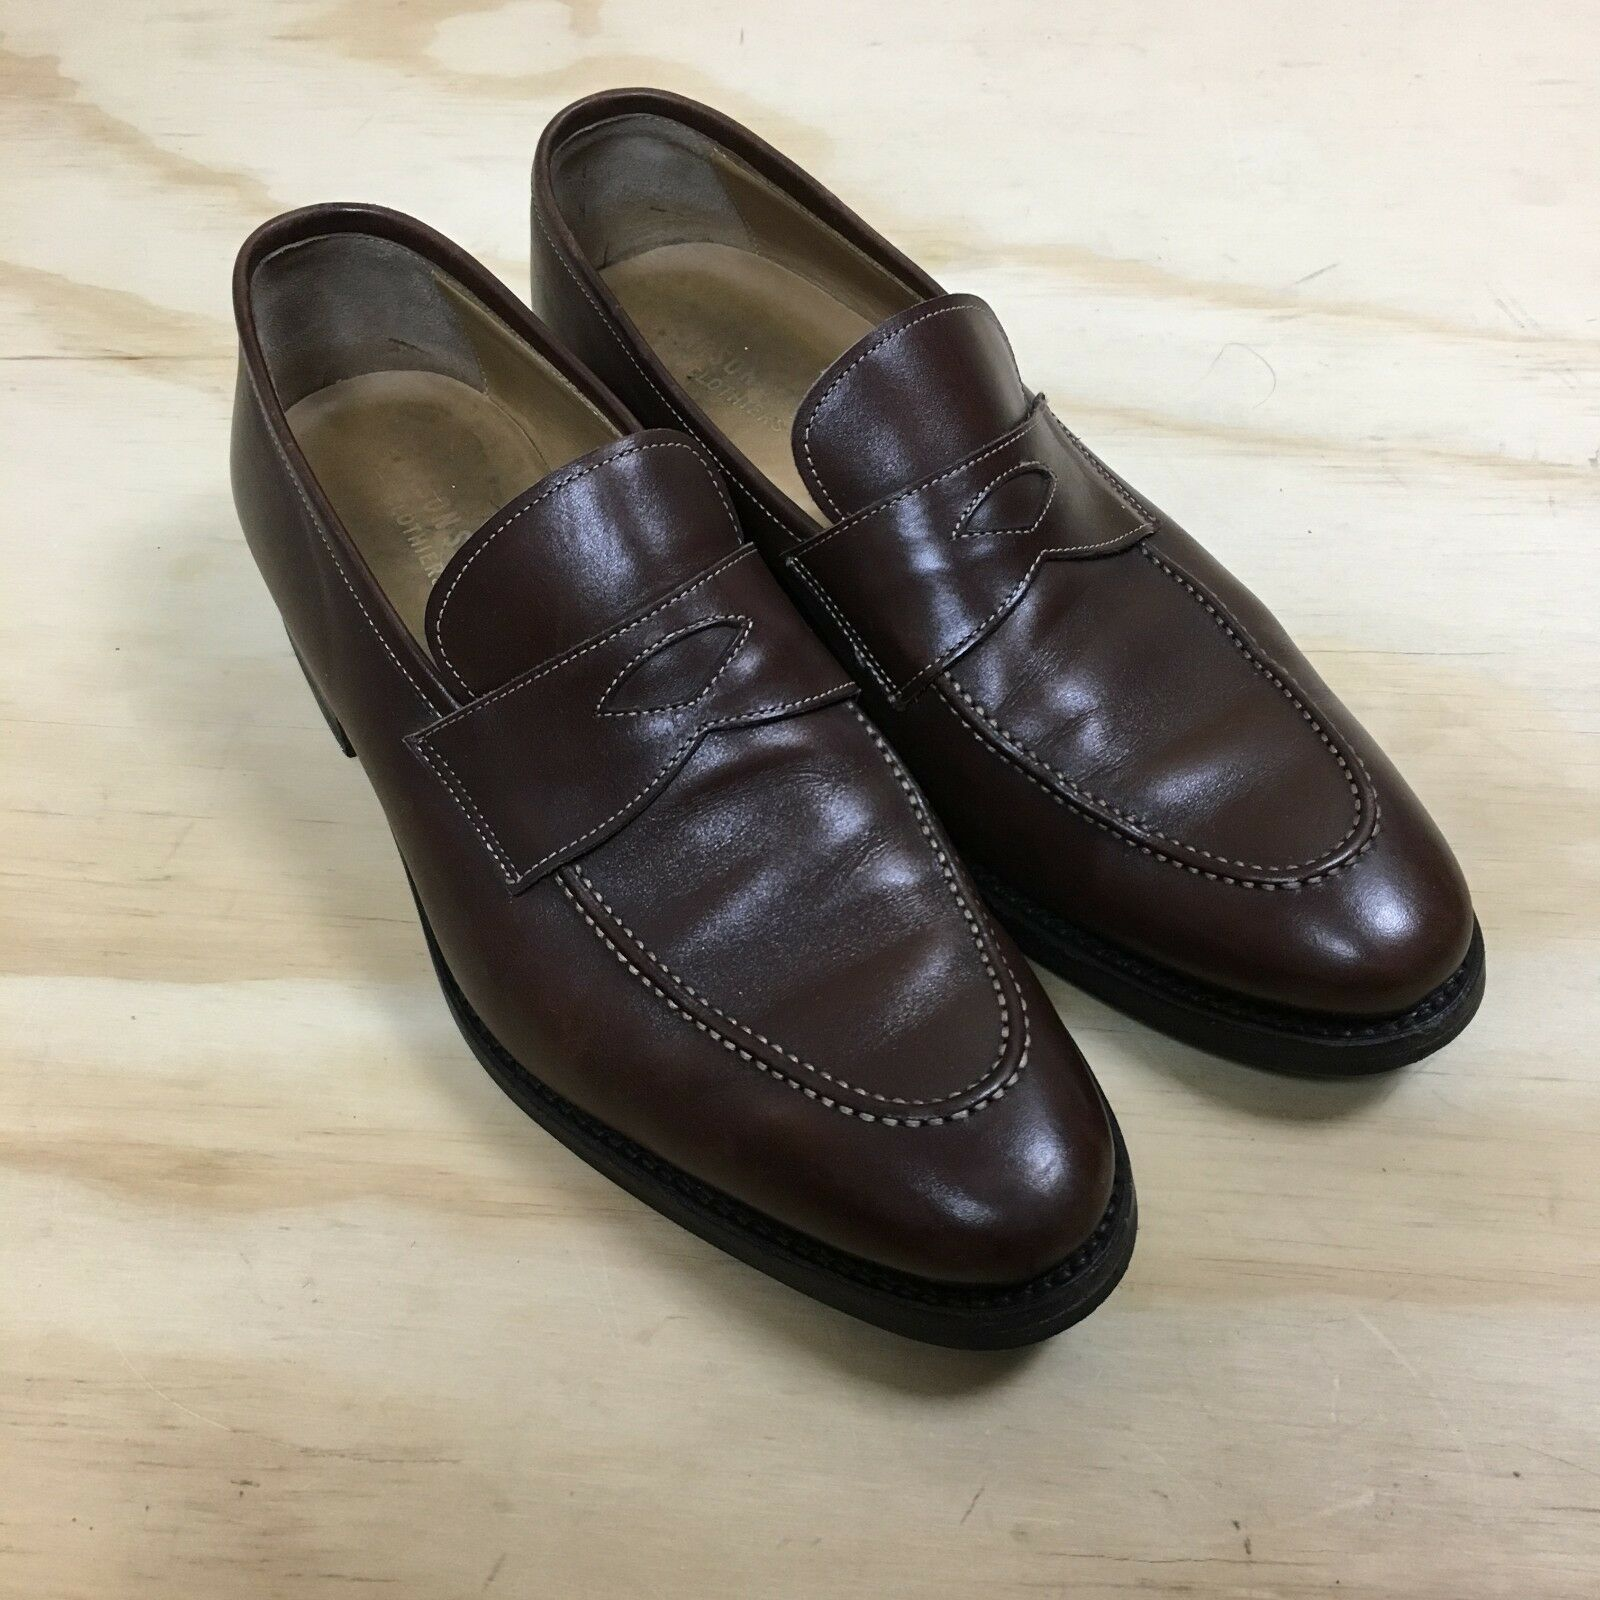 Carson Street Clothiers Brown Leather Moc Toe Penny Loafers Men's Size 9.5 A